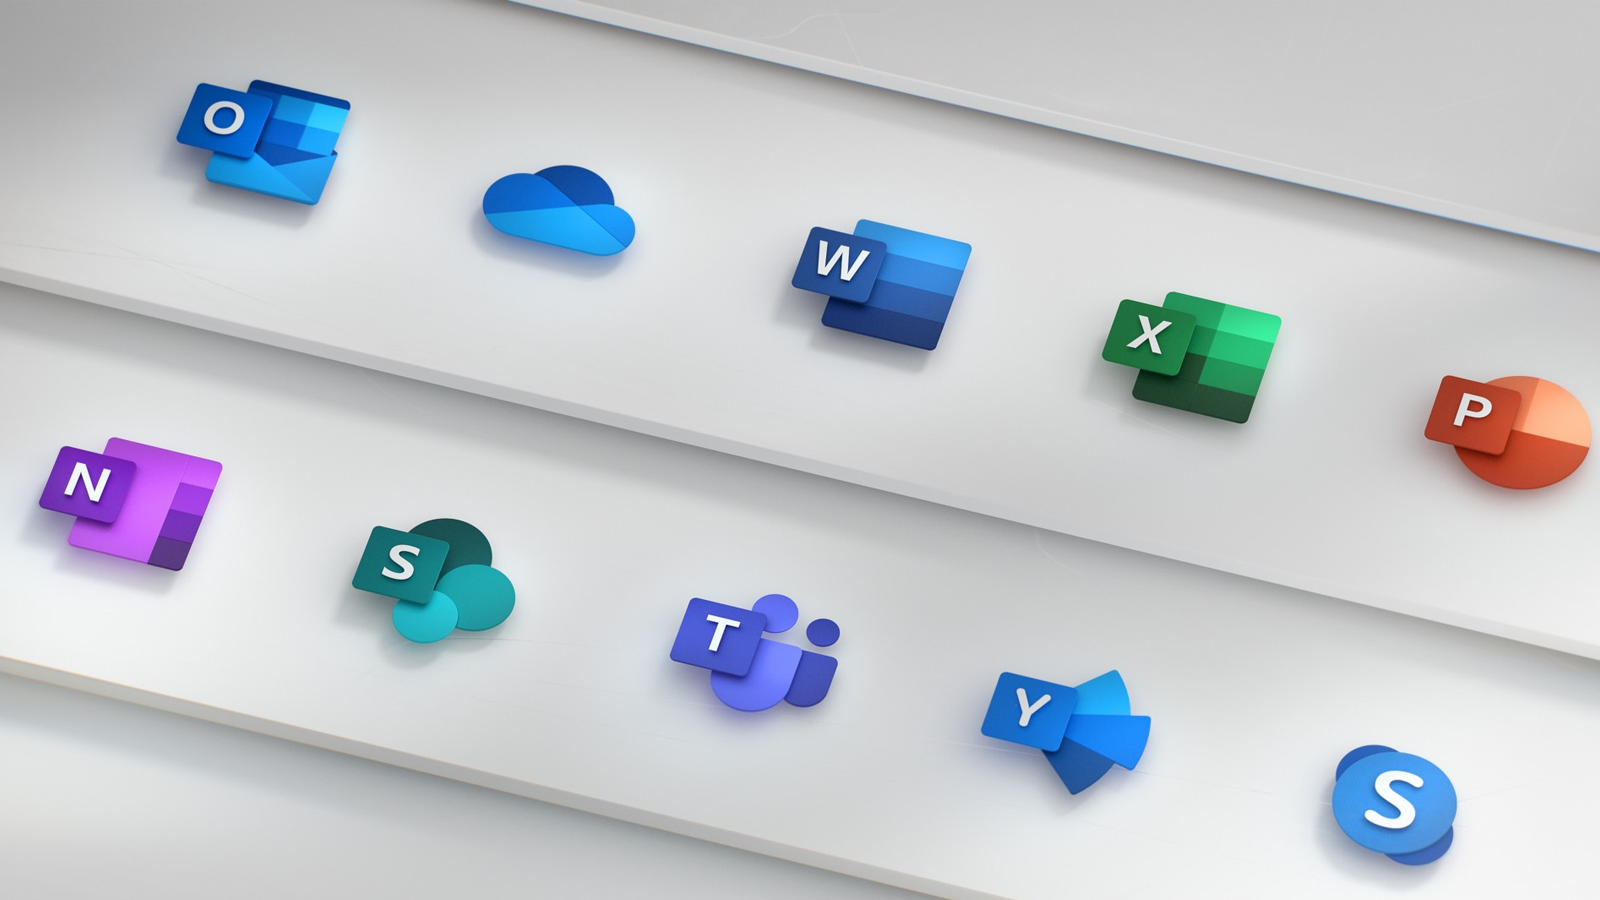 The logos for Outlook, Word, Excel, Powerpoint, and other Microsoft software.